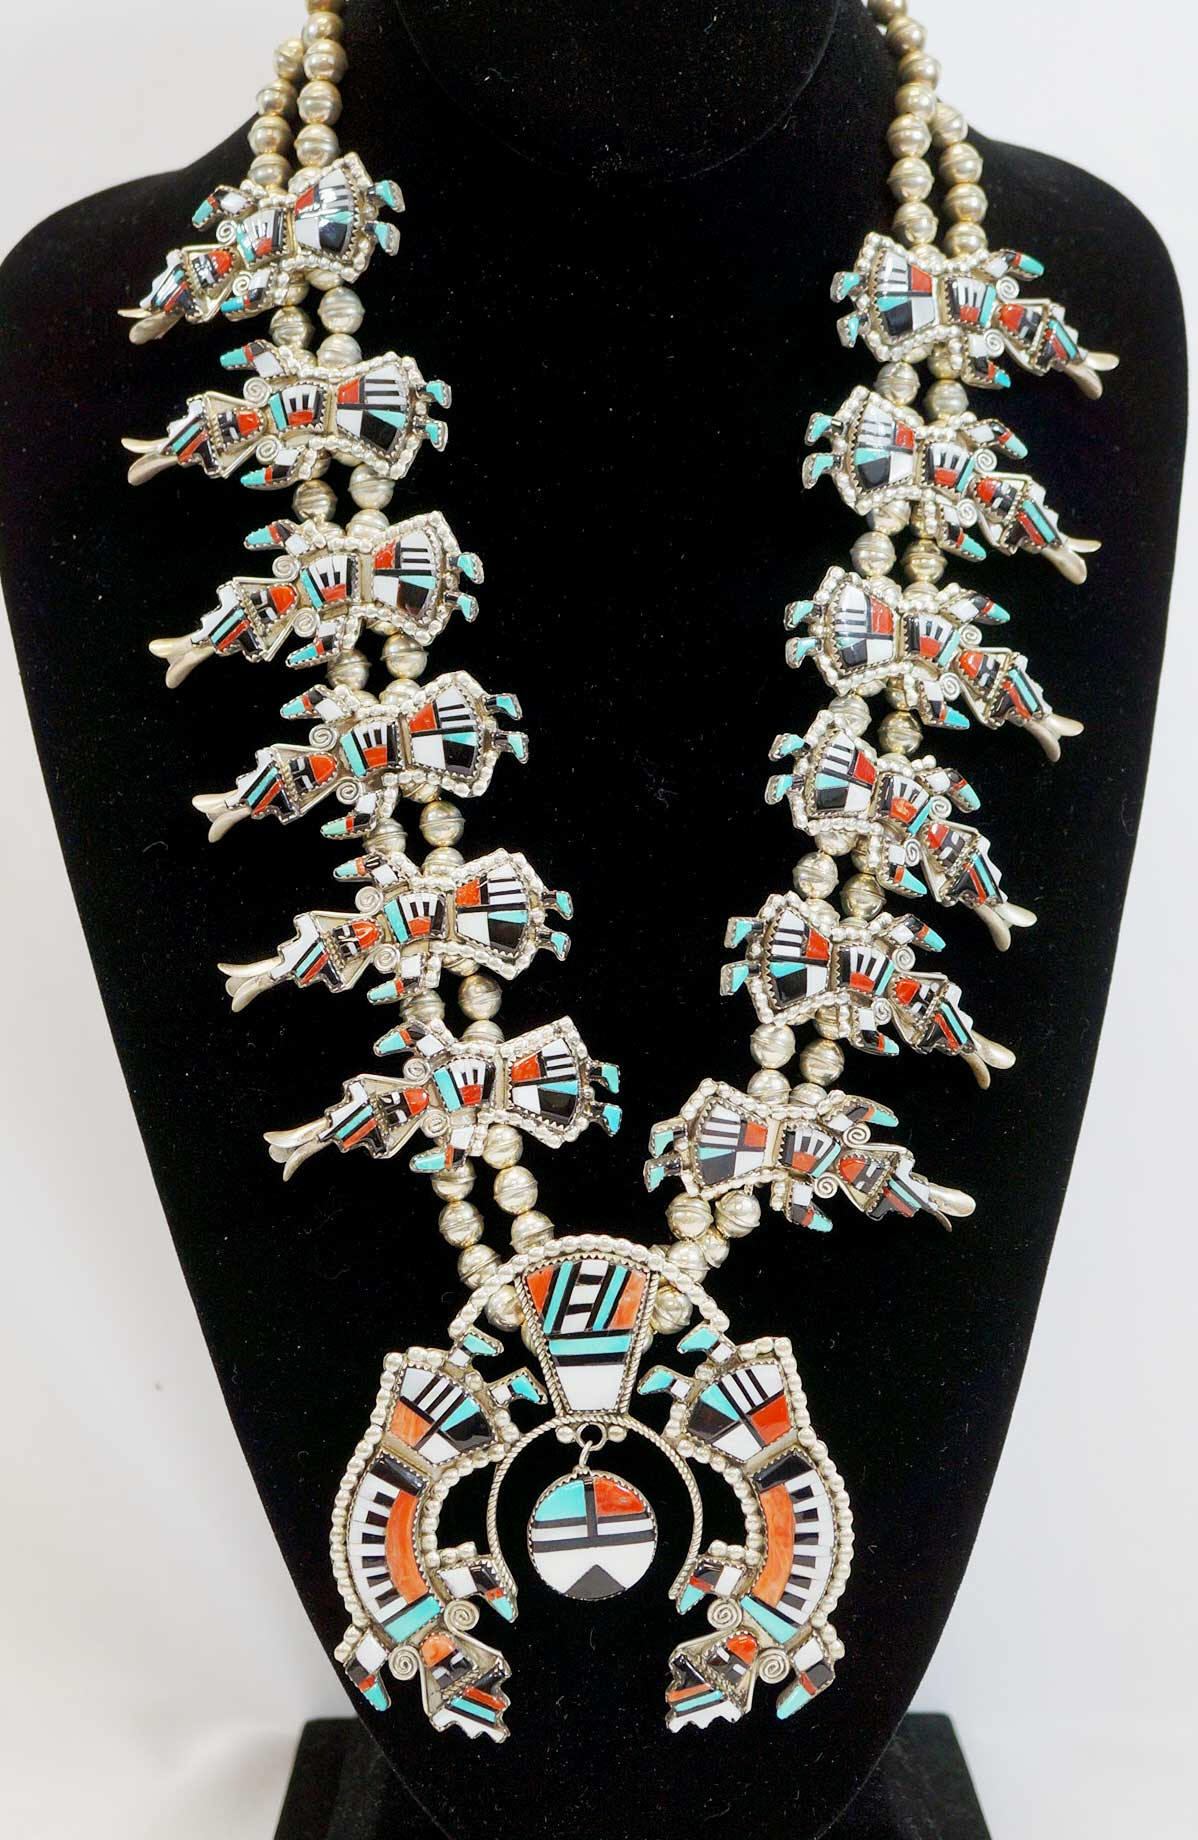 Herbert & Esther Cellicion Signed Zuni Necklace